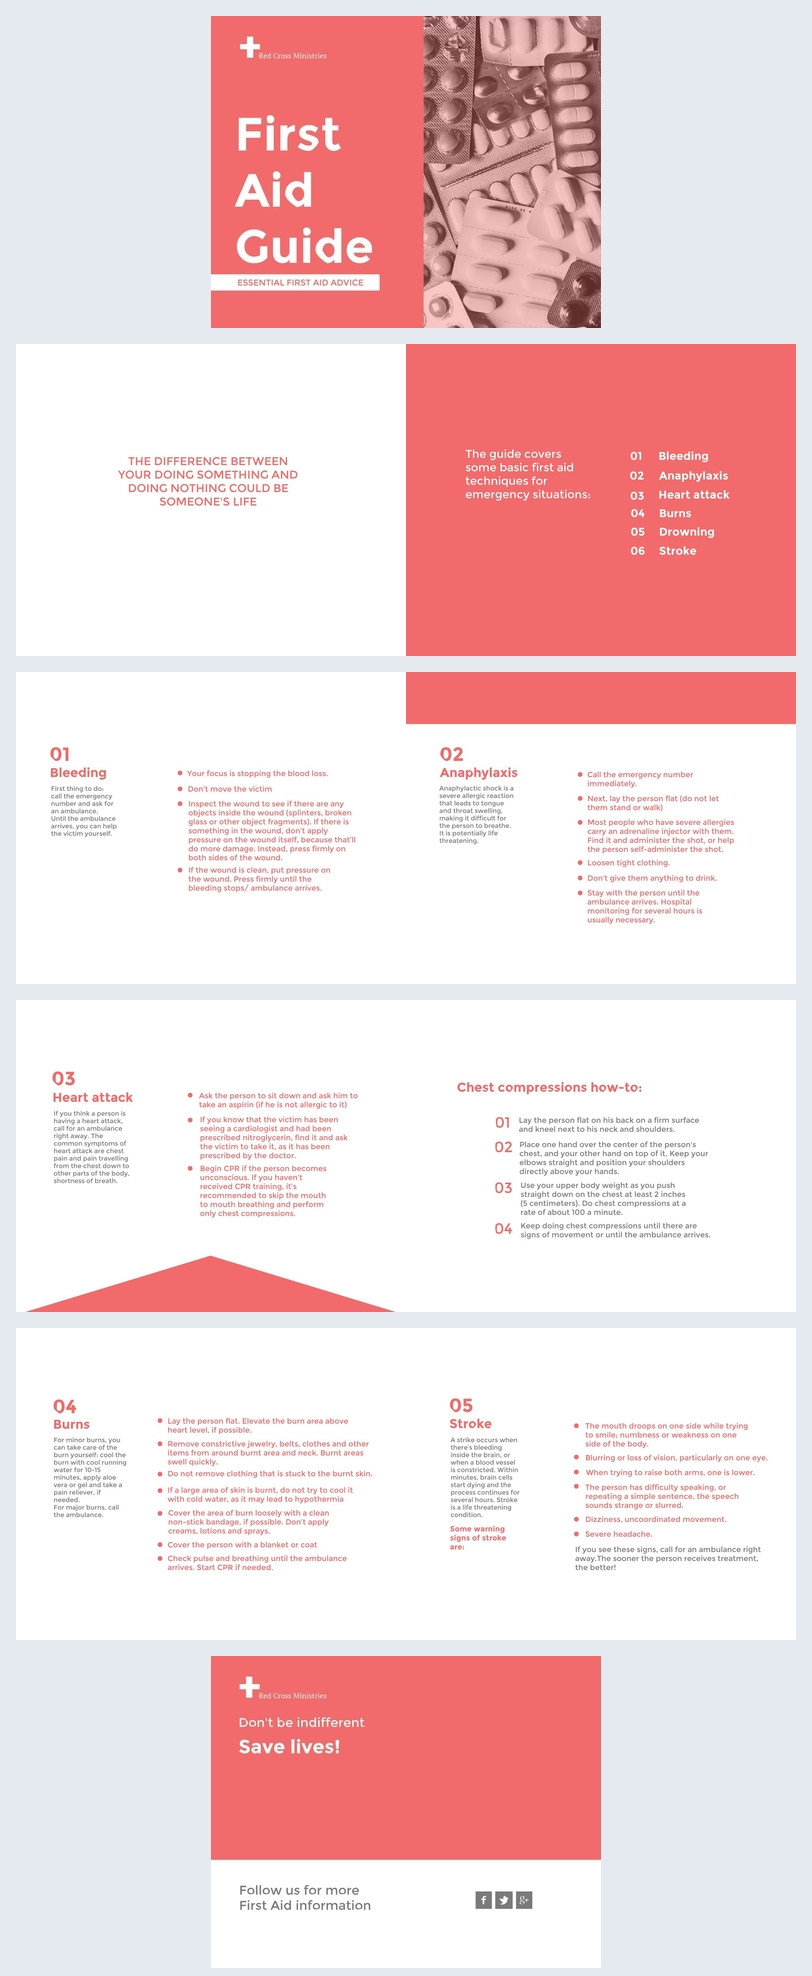 First Aid Guide Design Example